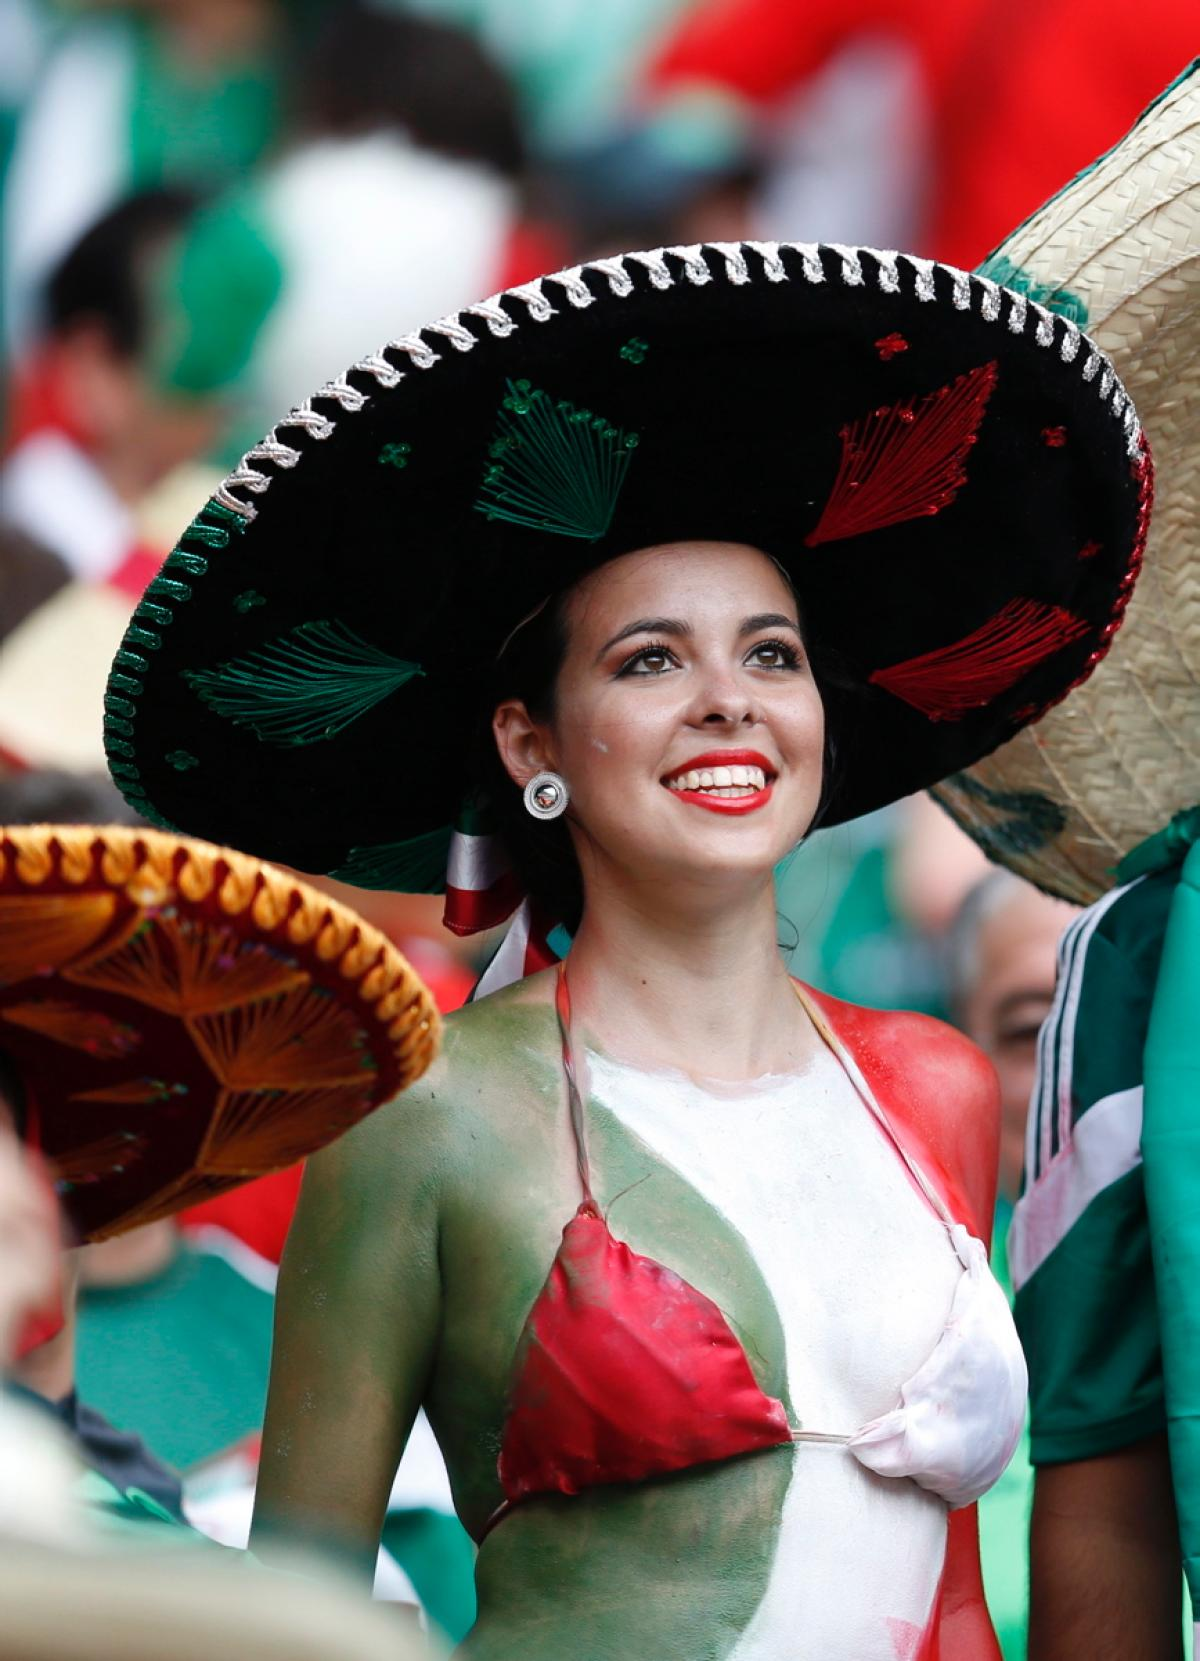 29 hot mexico fan - hottest female fans 2014 world cup